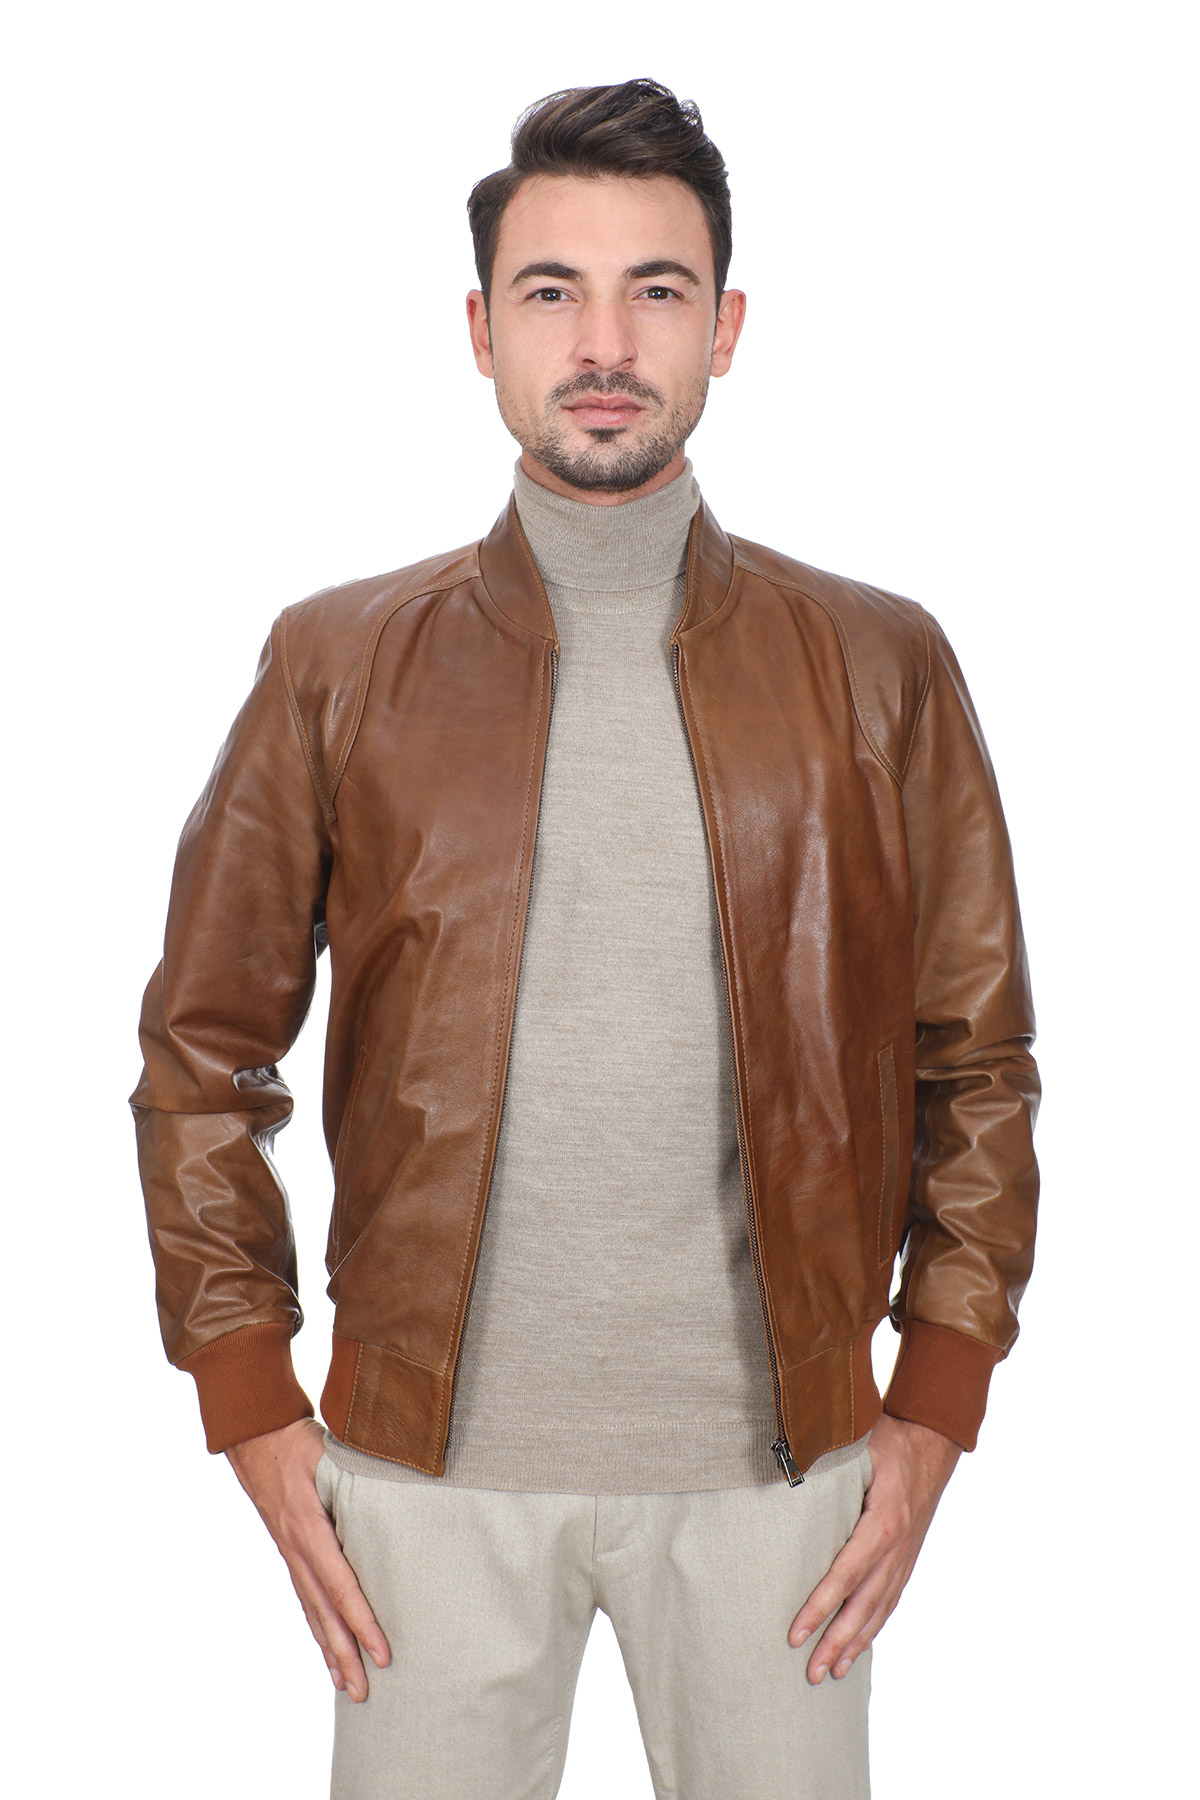 Where To Find A Leather Jacket